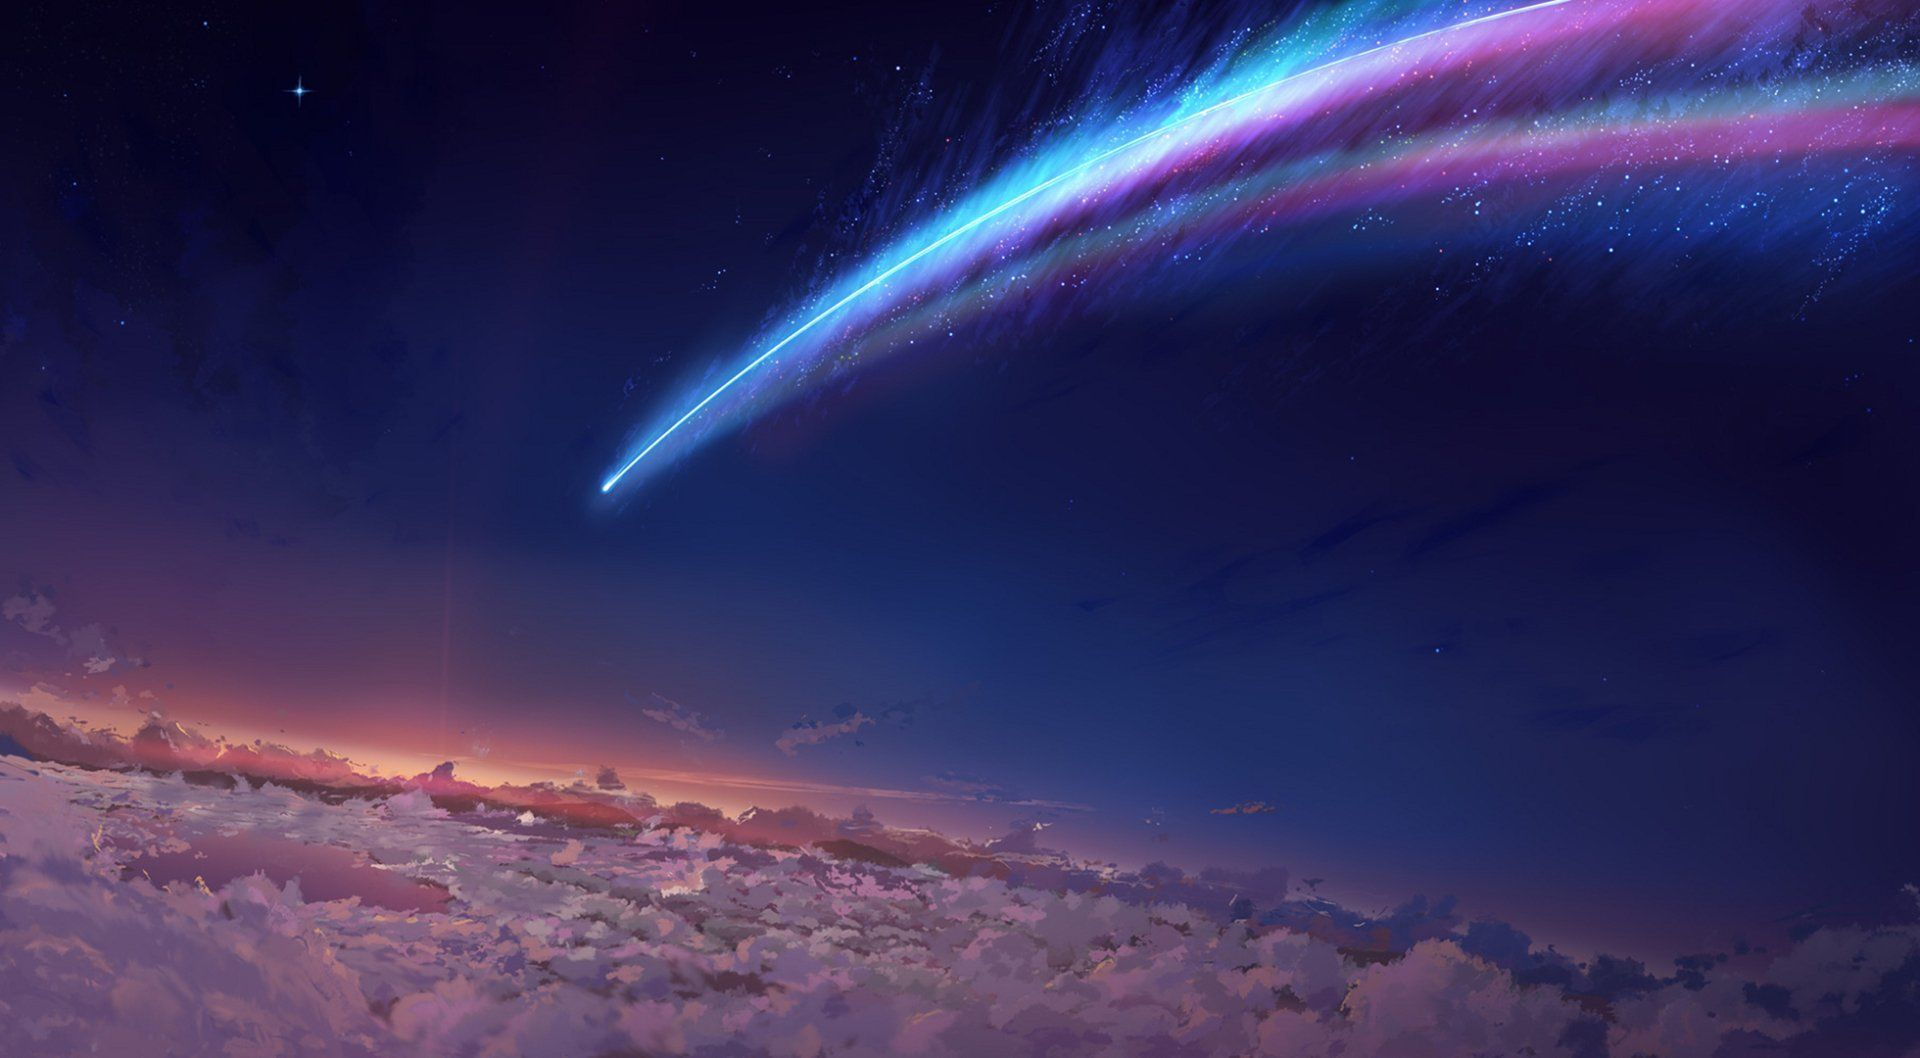 Anime Your Name Kimi No Na Wa Sky Wallpaper Your Name Anime Kimi No Na Wa Wallpaper Kimi No Na Wa